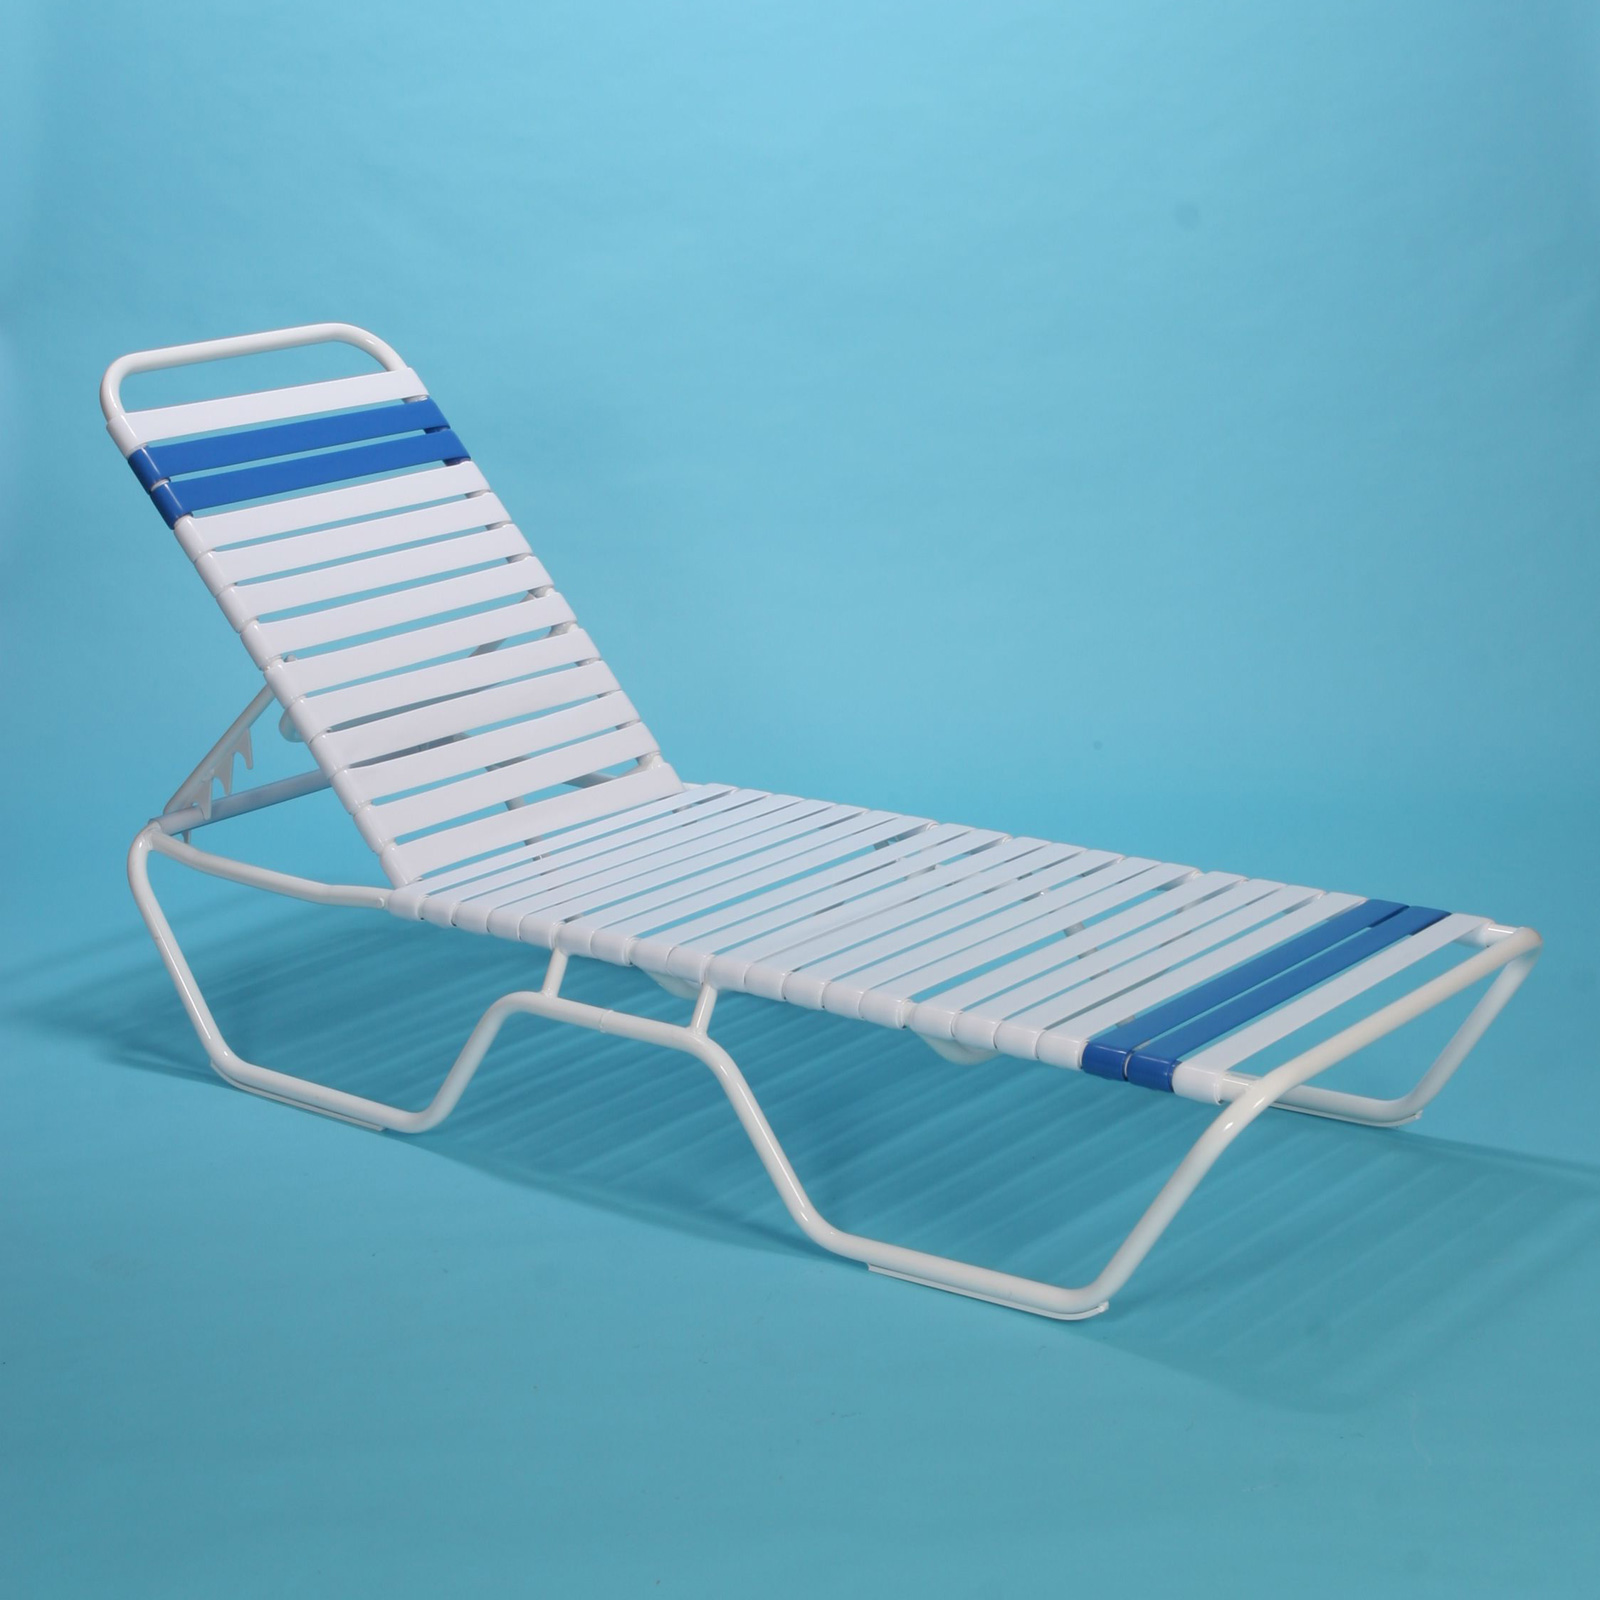 Commercial grade safety rail chaise lounge 12 tall for Big and tall chaise lounge